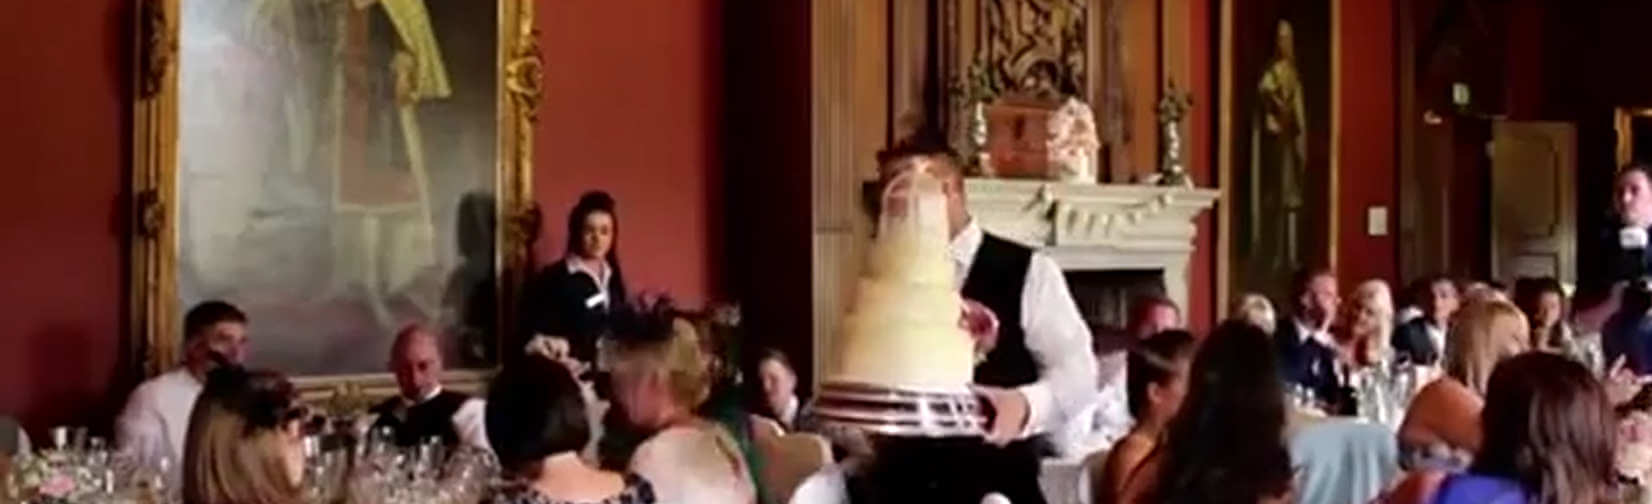 Would you put up with the antics of this Groom on your Wedding Day